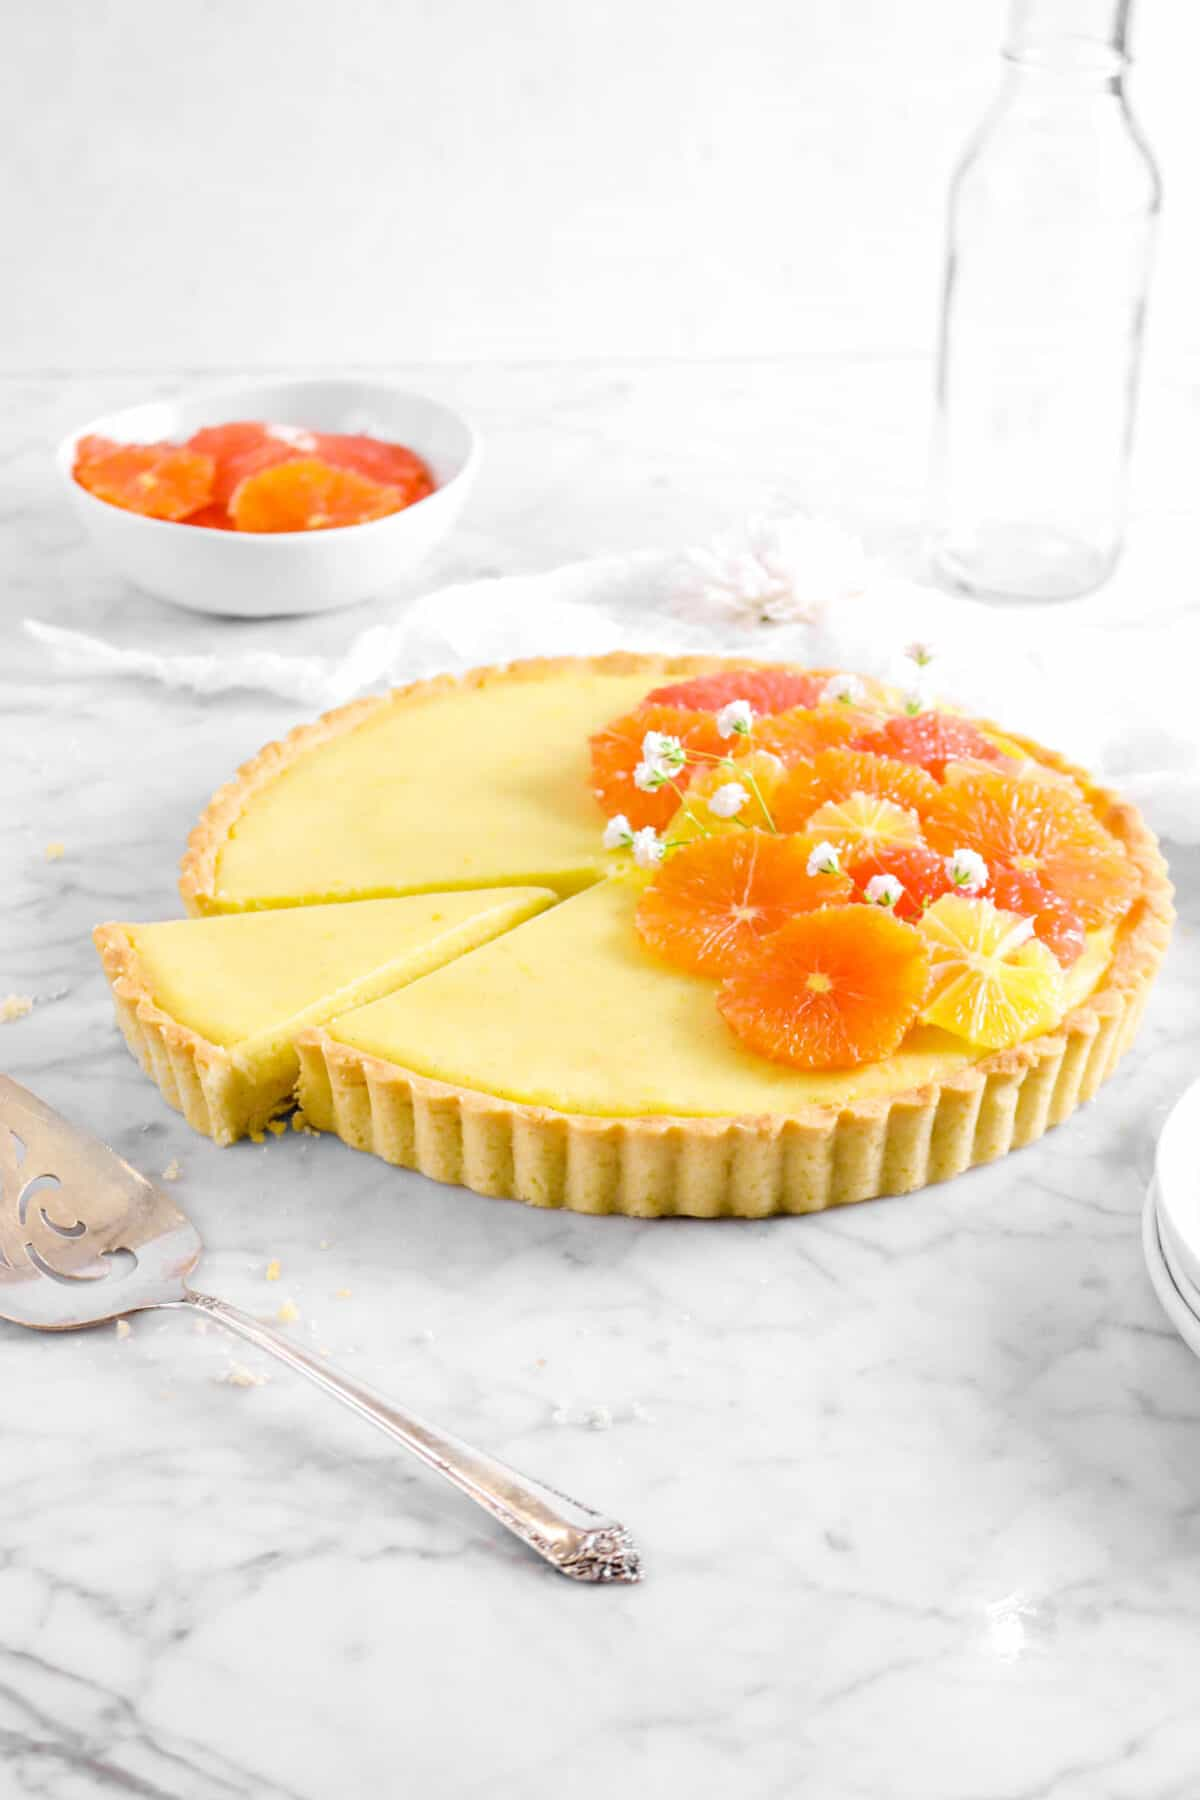 citrus tart with slice taken out of it on marble counter with sliced citrus, cake knife, and glass